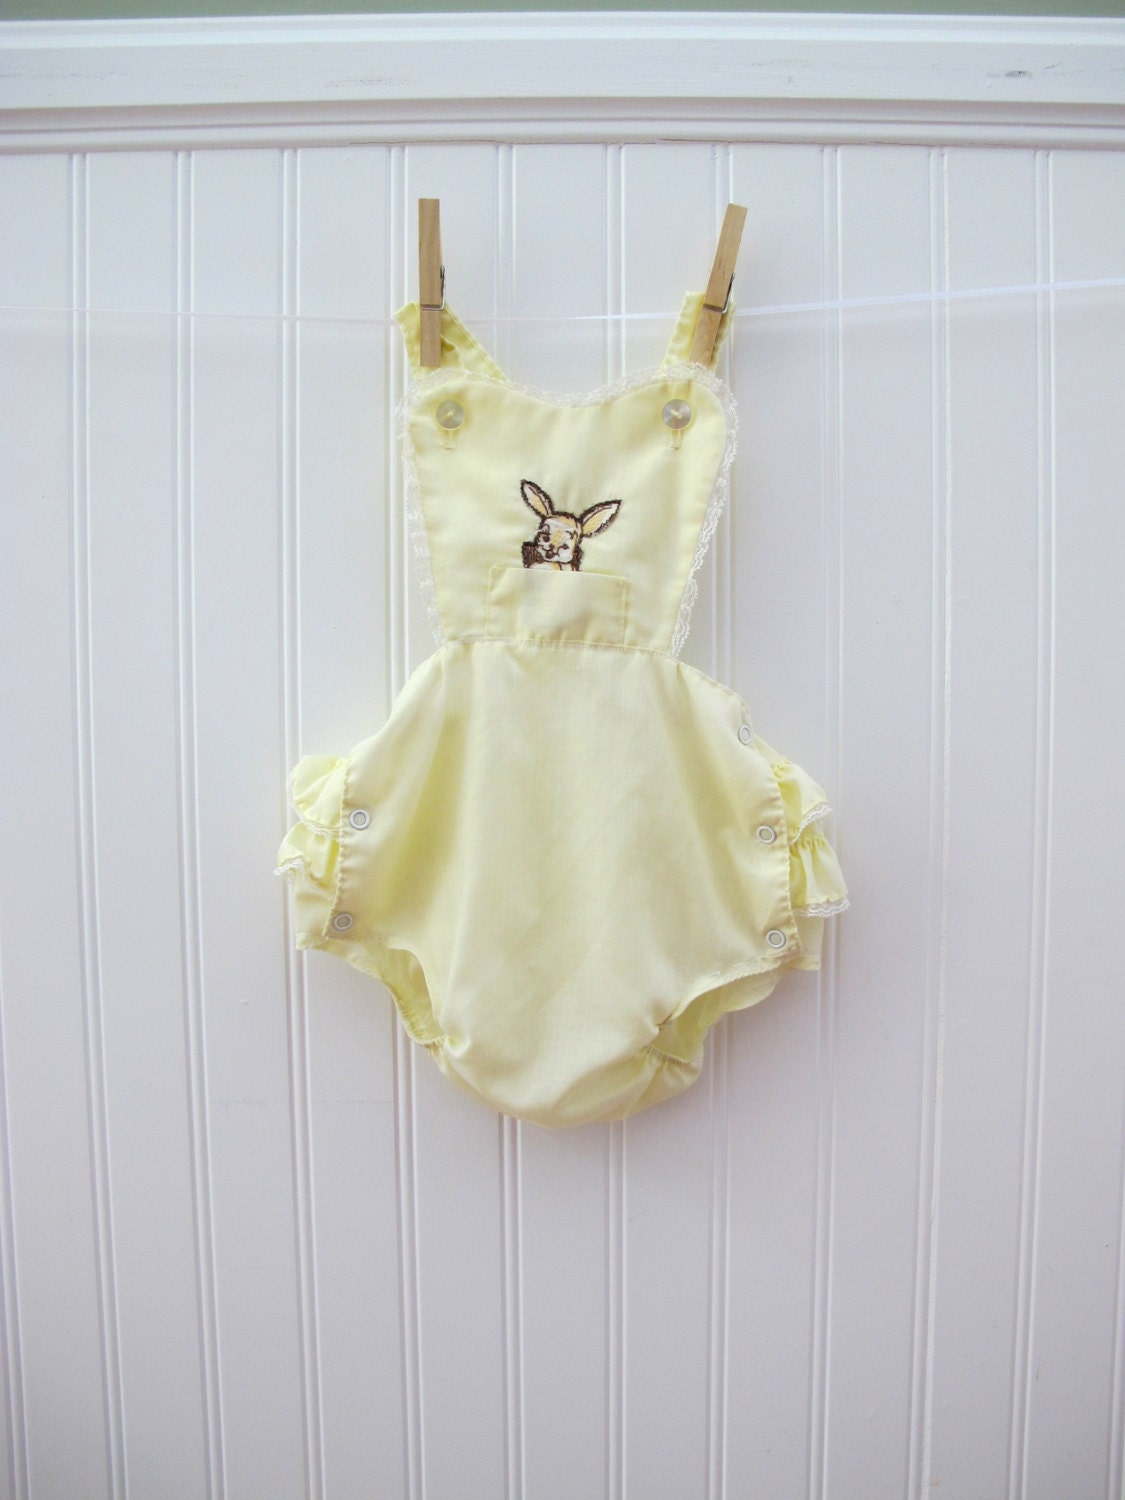 Romper Vintage Baby Clothes Yellow with Ruffles and Bunny